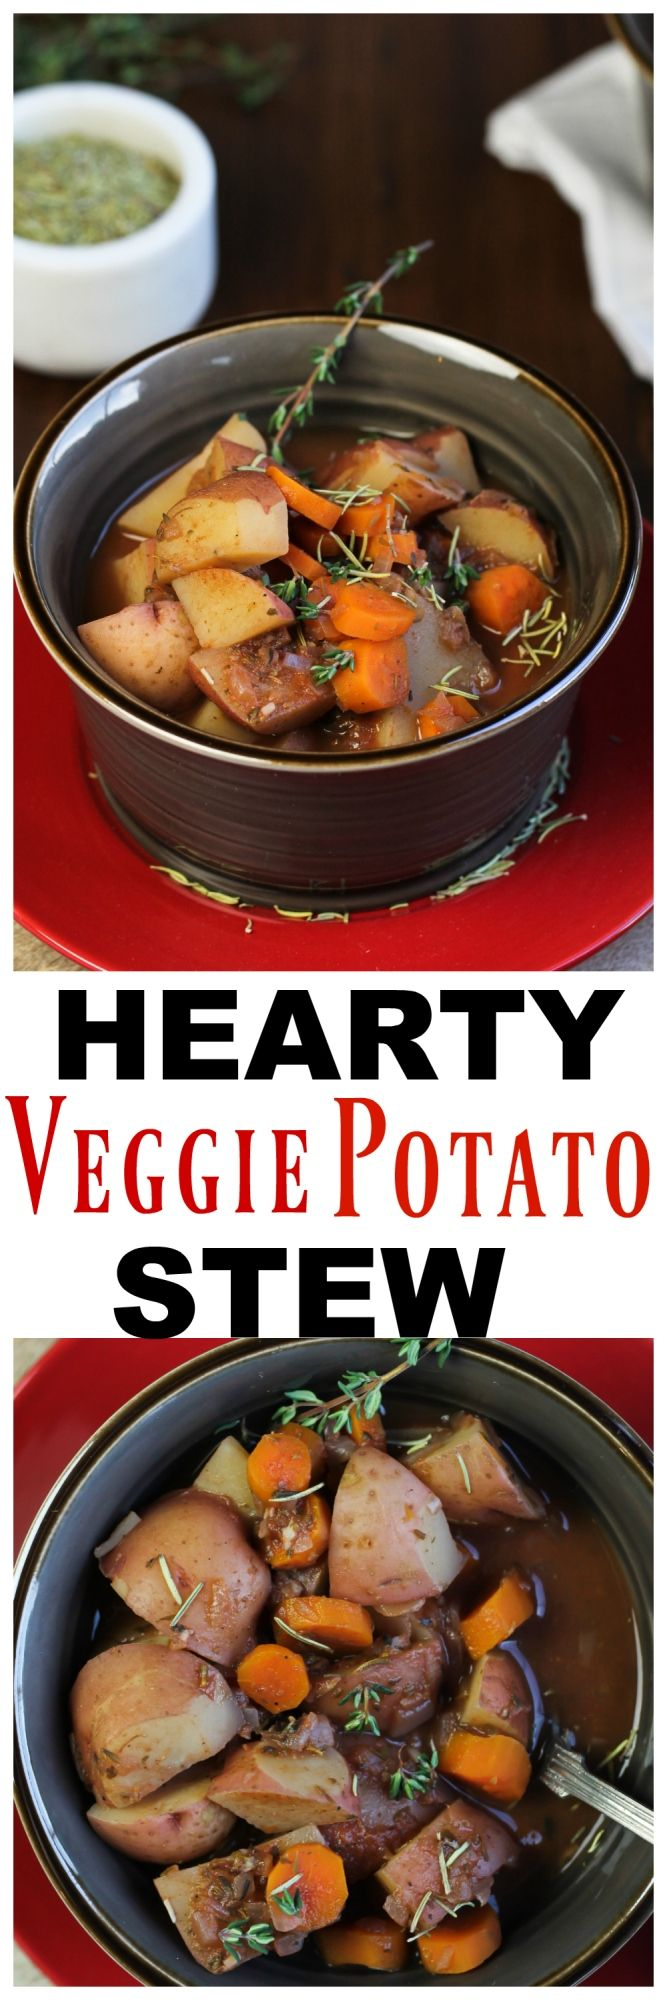 Hearty Veggie Potato Stew. This stew is the vegan version of classic beef stew…